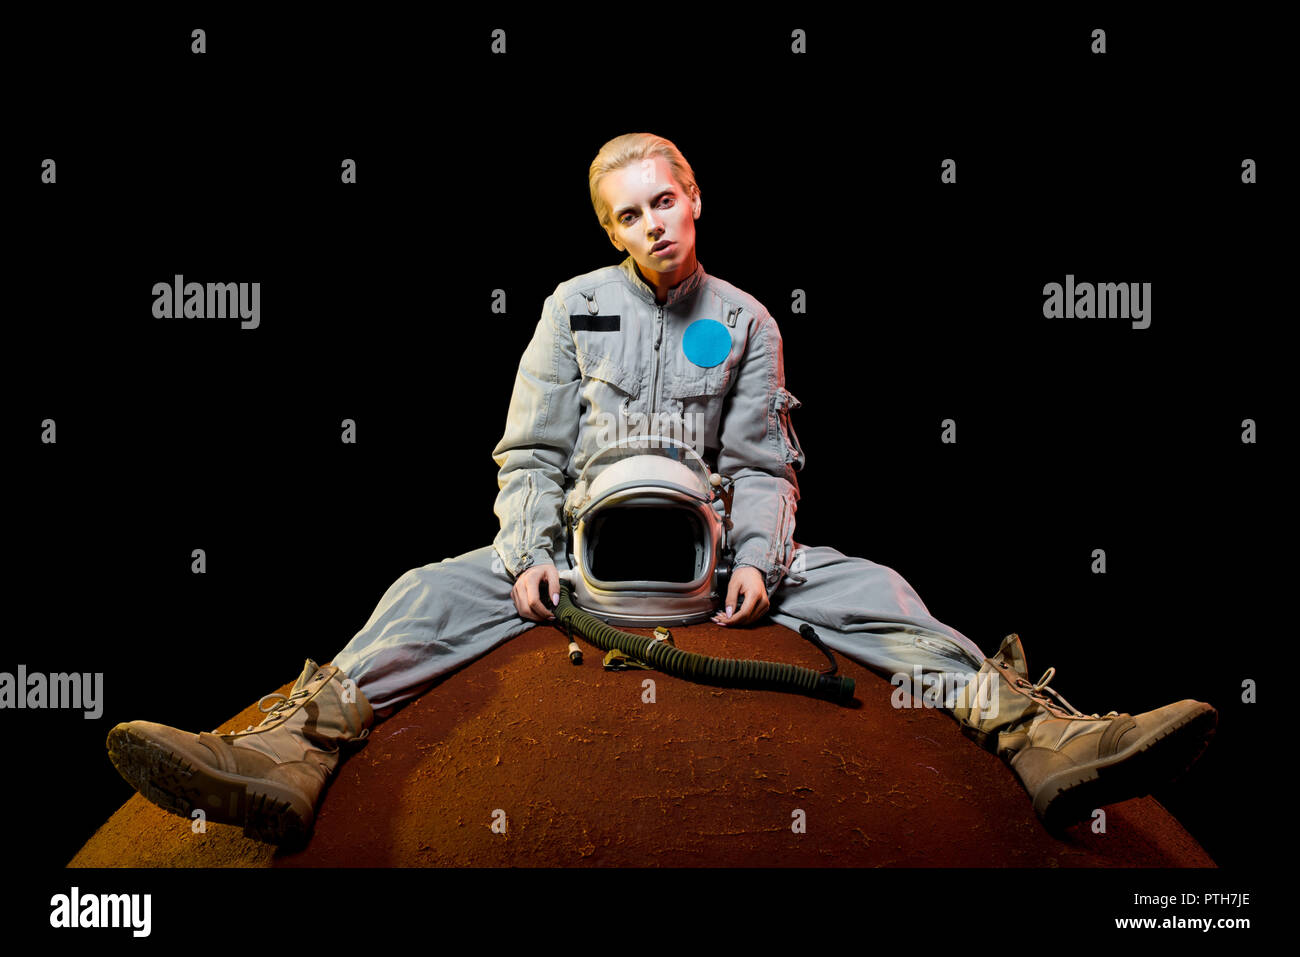 attractive spacewoman in spacesuit with helmet sitting on planet - Stock Image